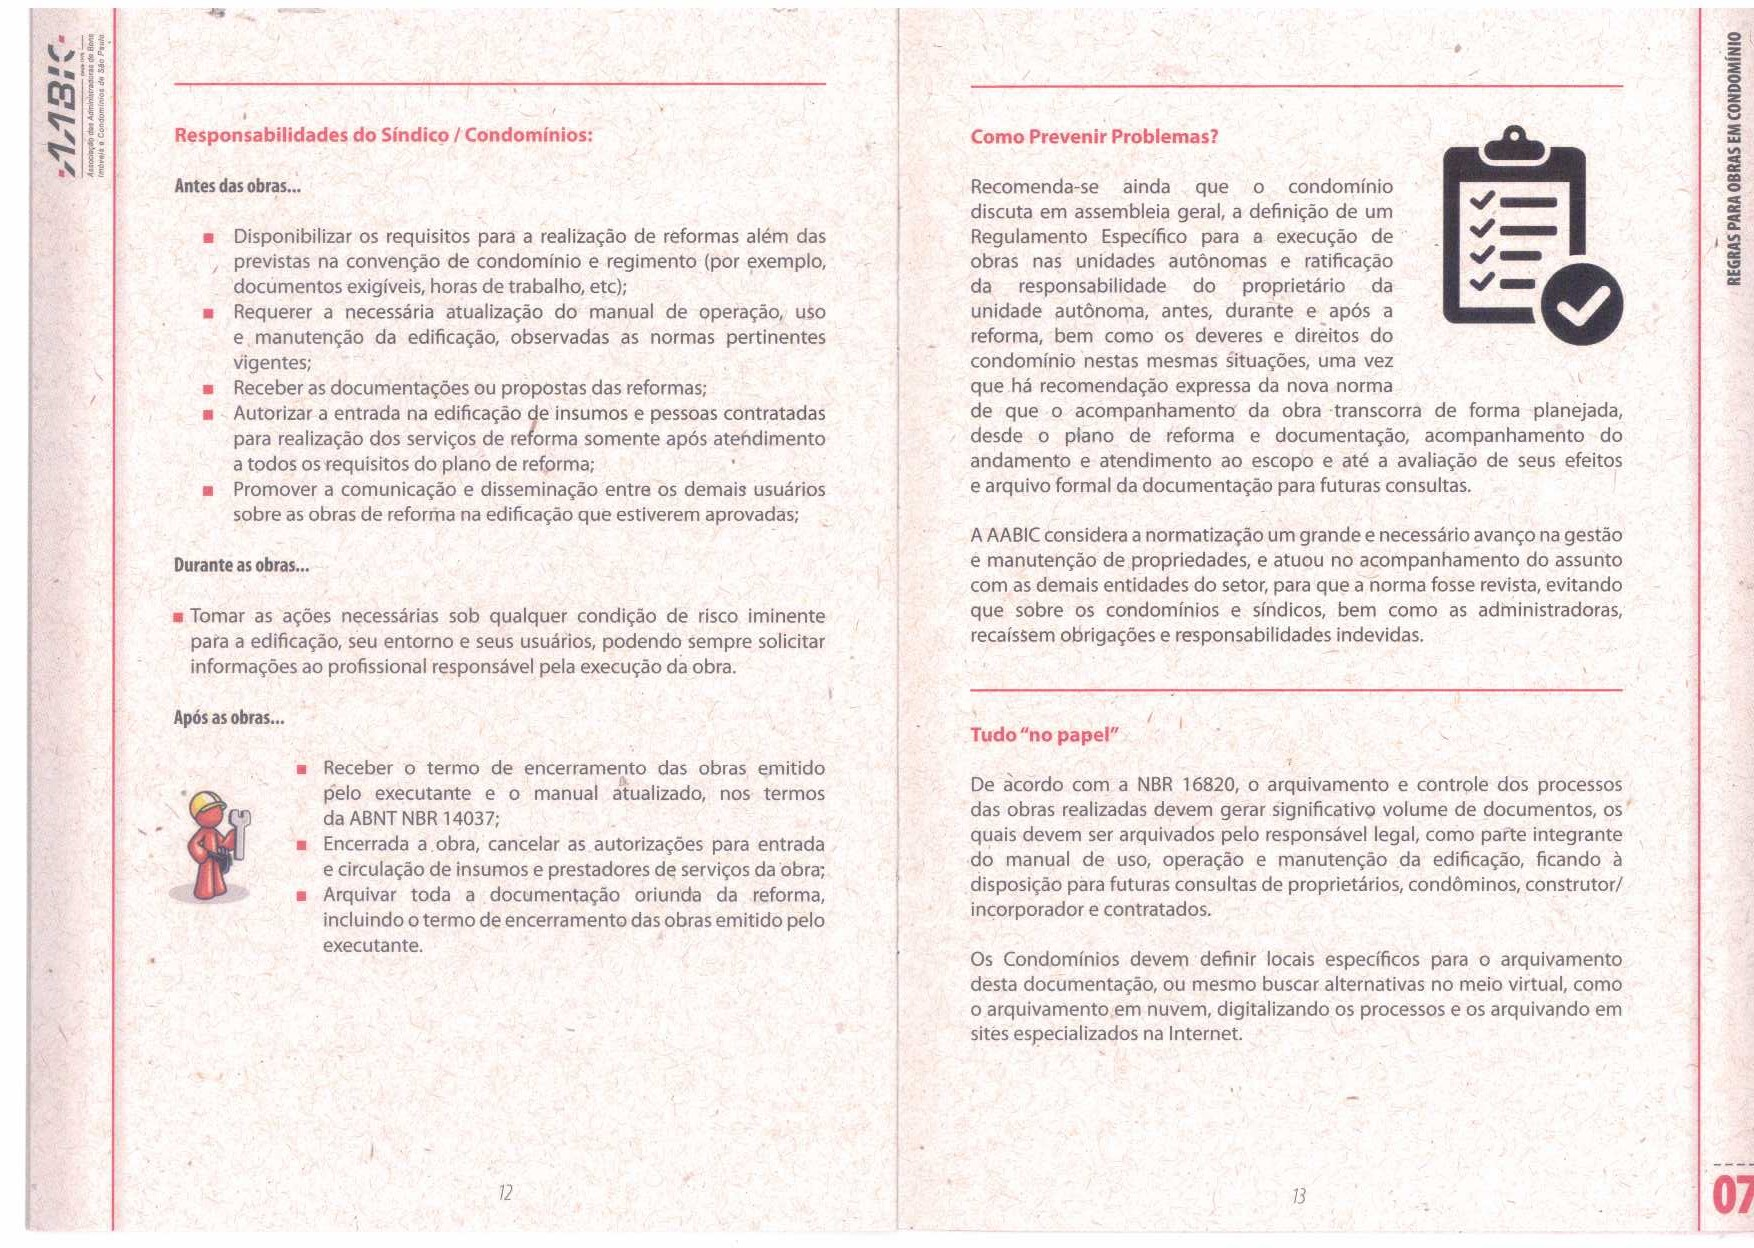 Scan_20190402_141142_006